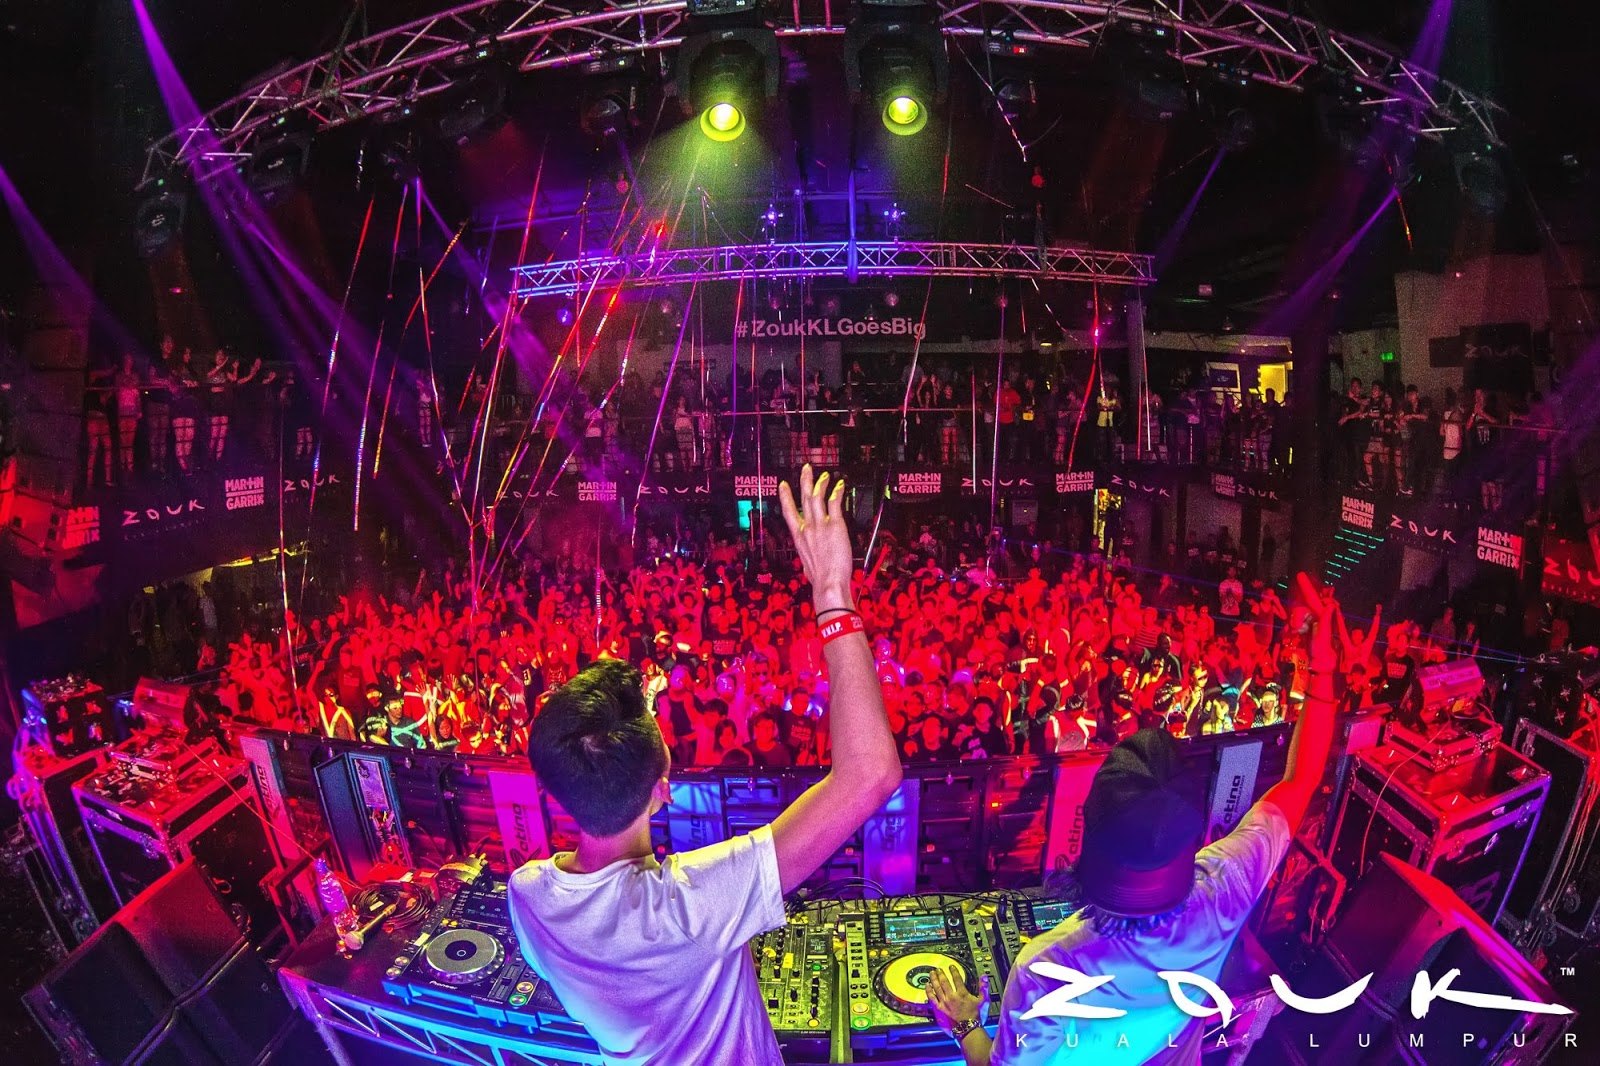 Zouk KL presents ZoukIn, a new festival experience